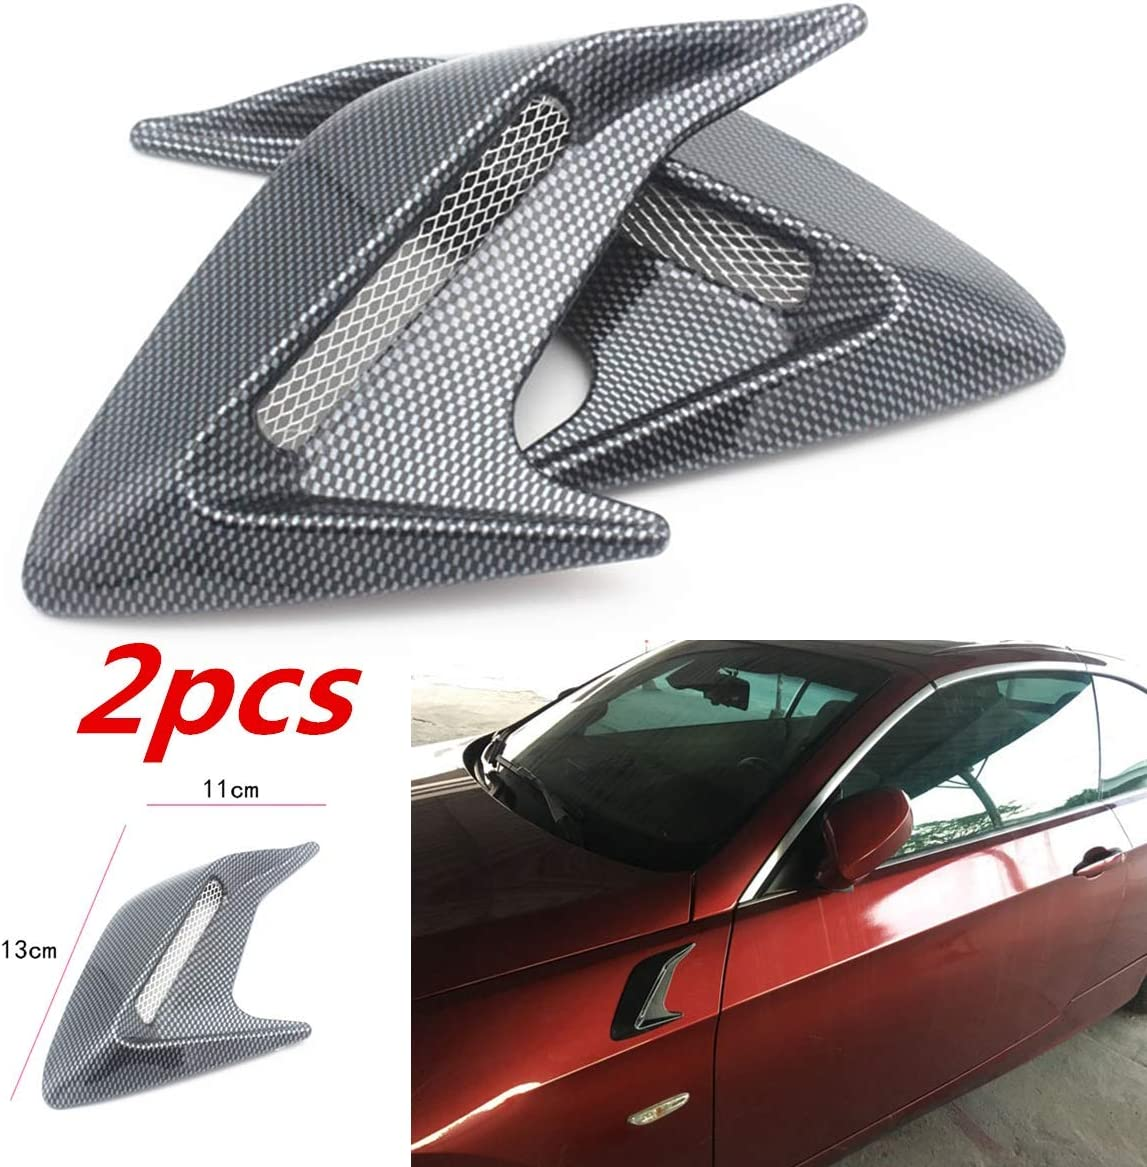 Gray HERCHR 2PCS Carbon Fiber Plastic Car Hood Air Flow Fender Side Vent Decoration Sticker